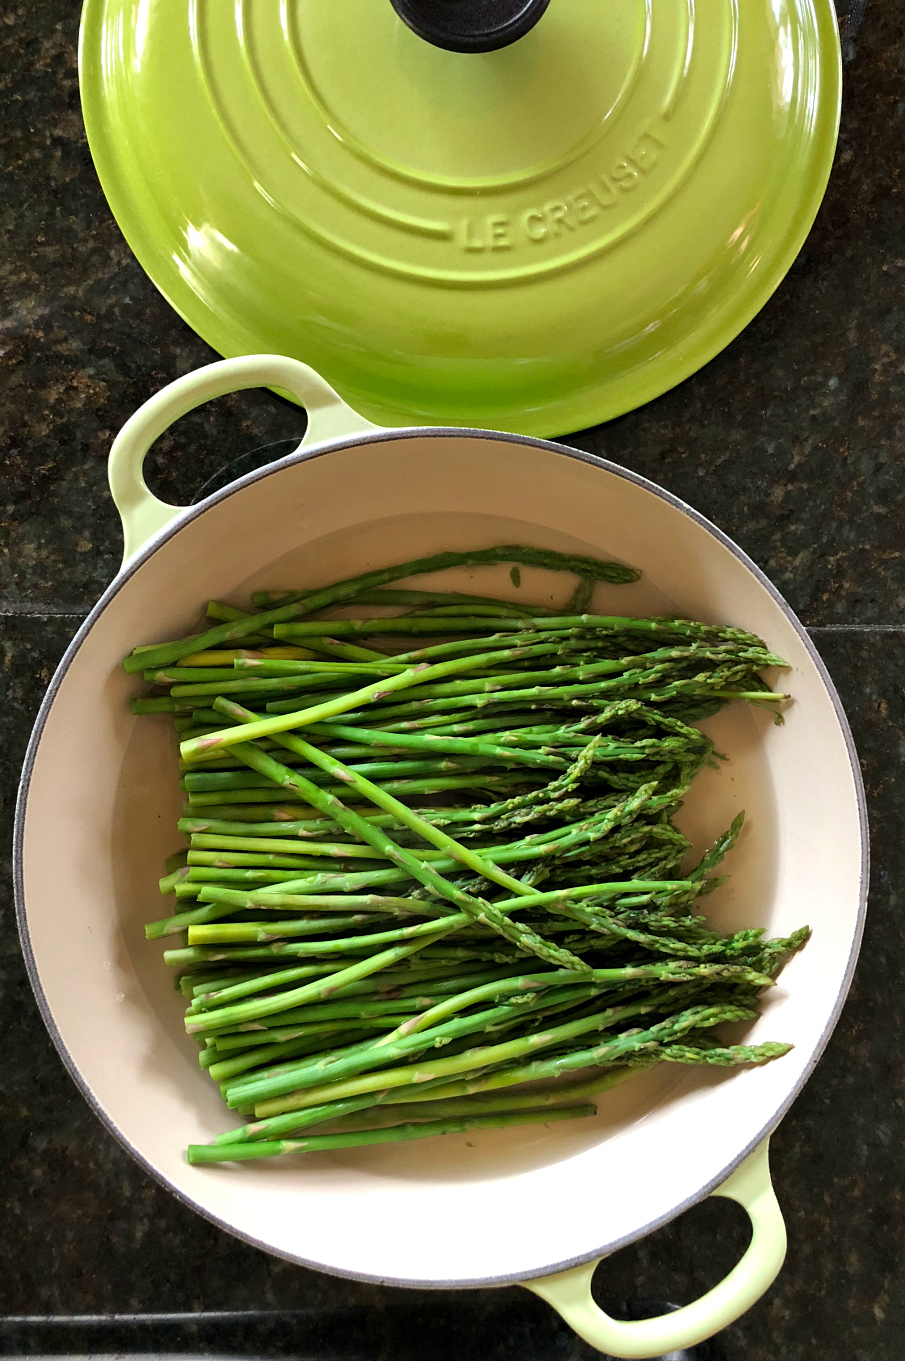 Simple and Easy Steamed Asparagus CeceliasGoodStuff.com Good Food for Good People